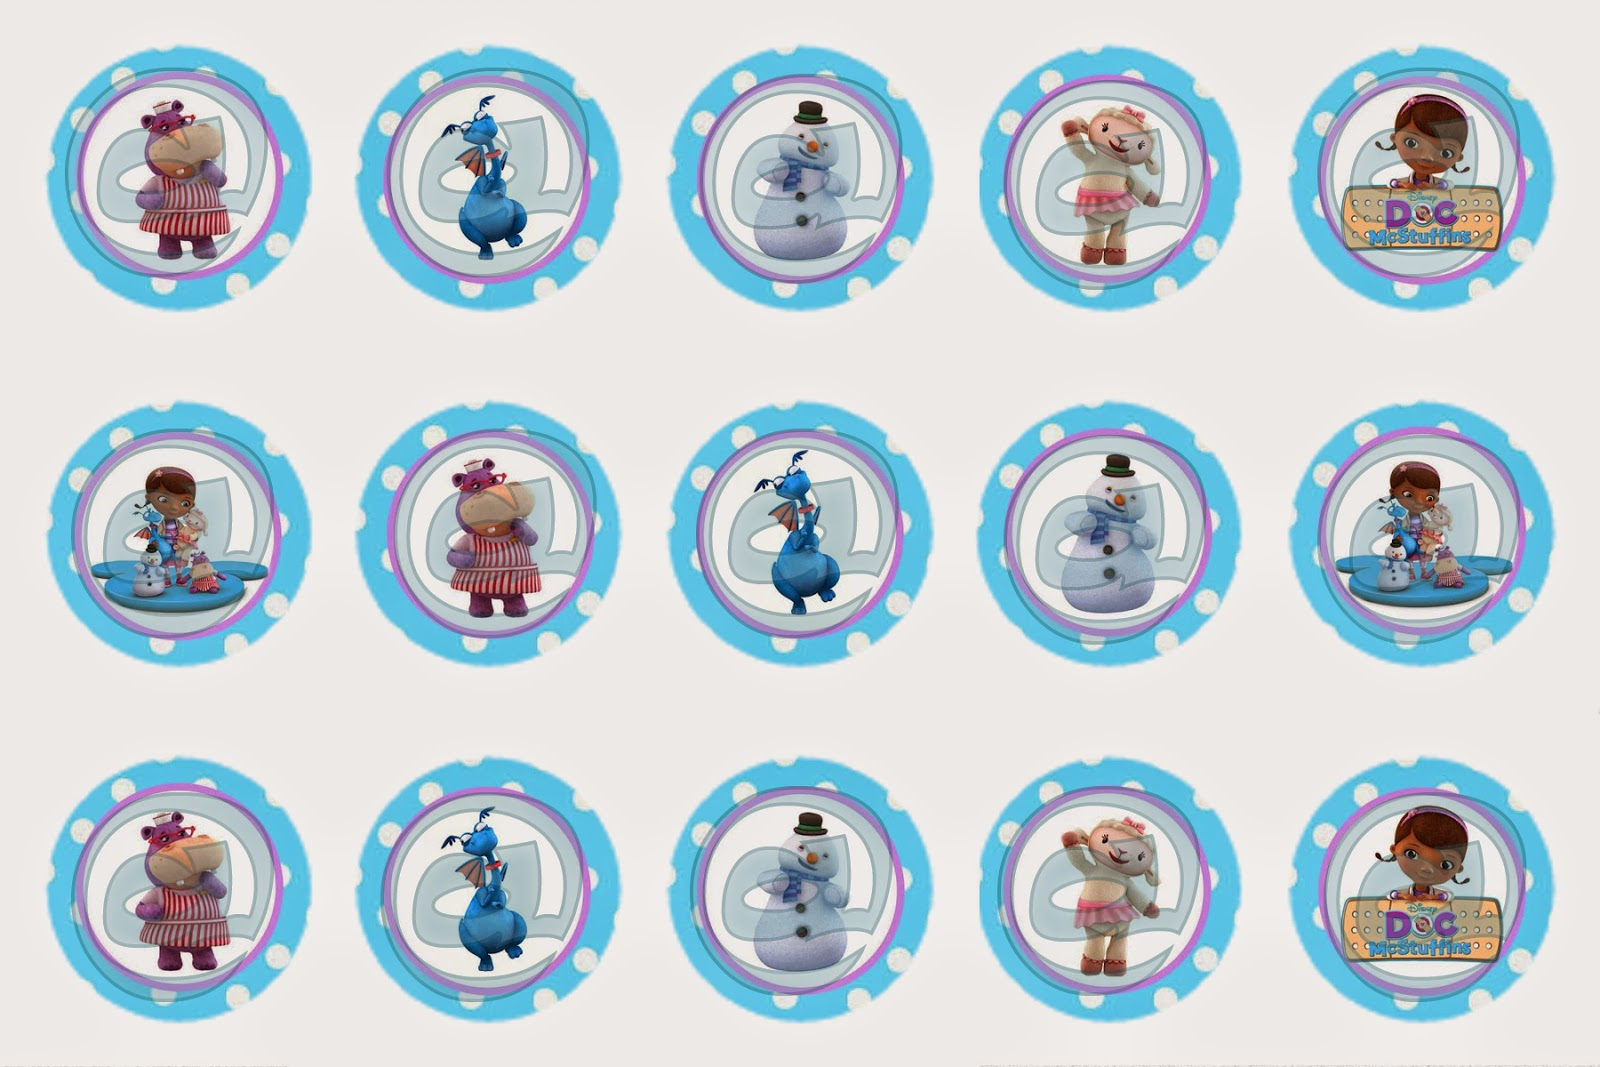 Unique bottle cap designs disney doc mcstuffins bottle for Cool bottle cap designs